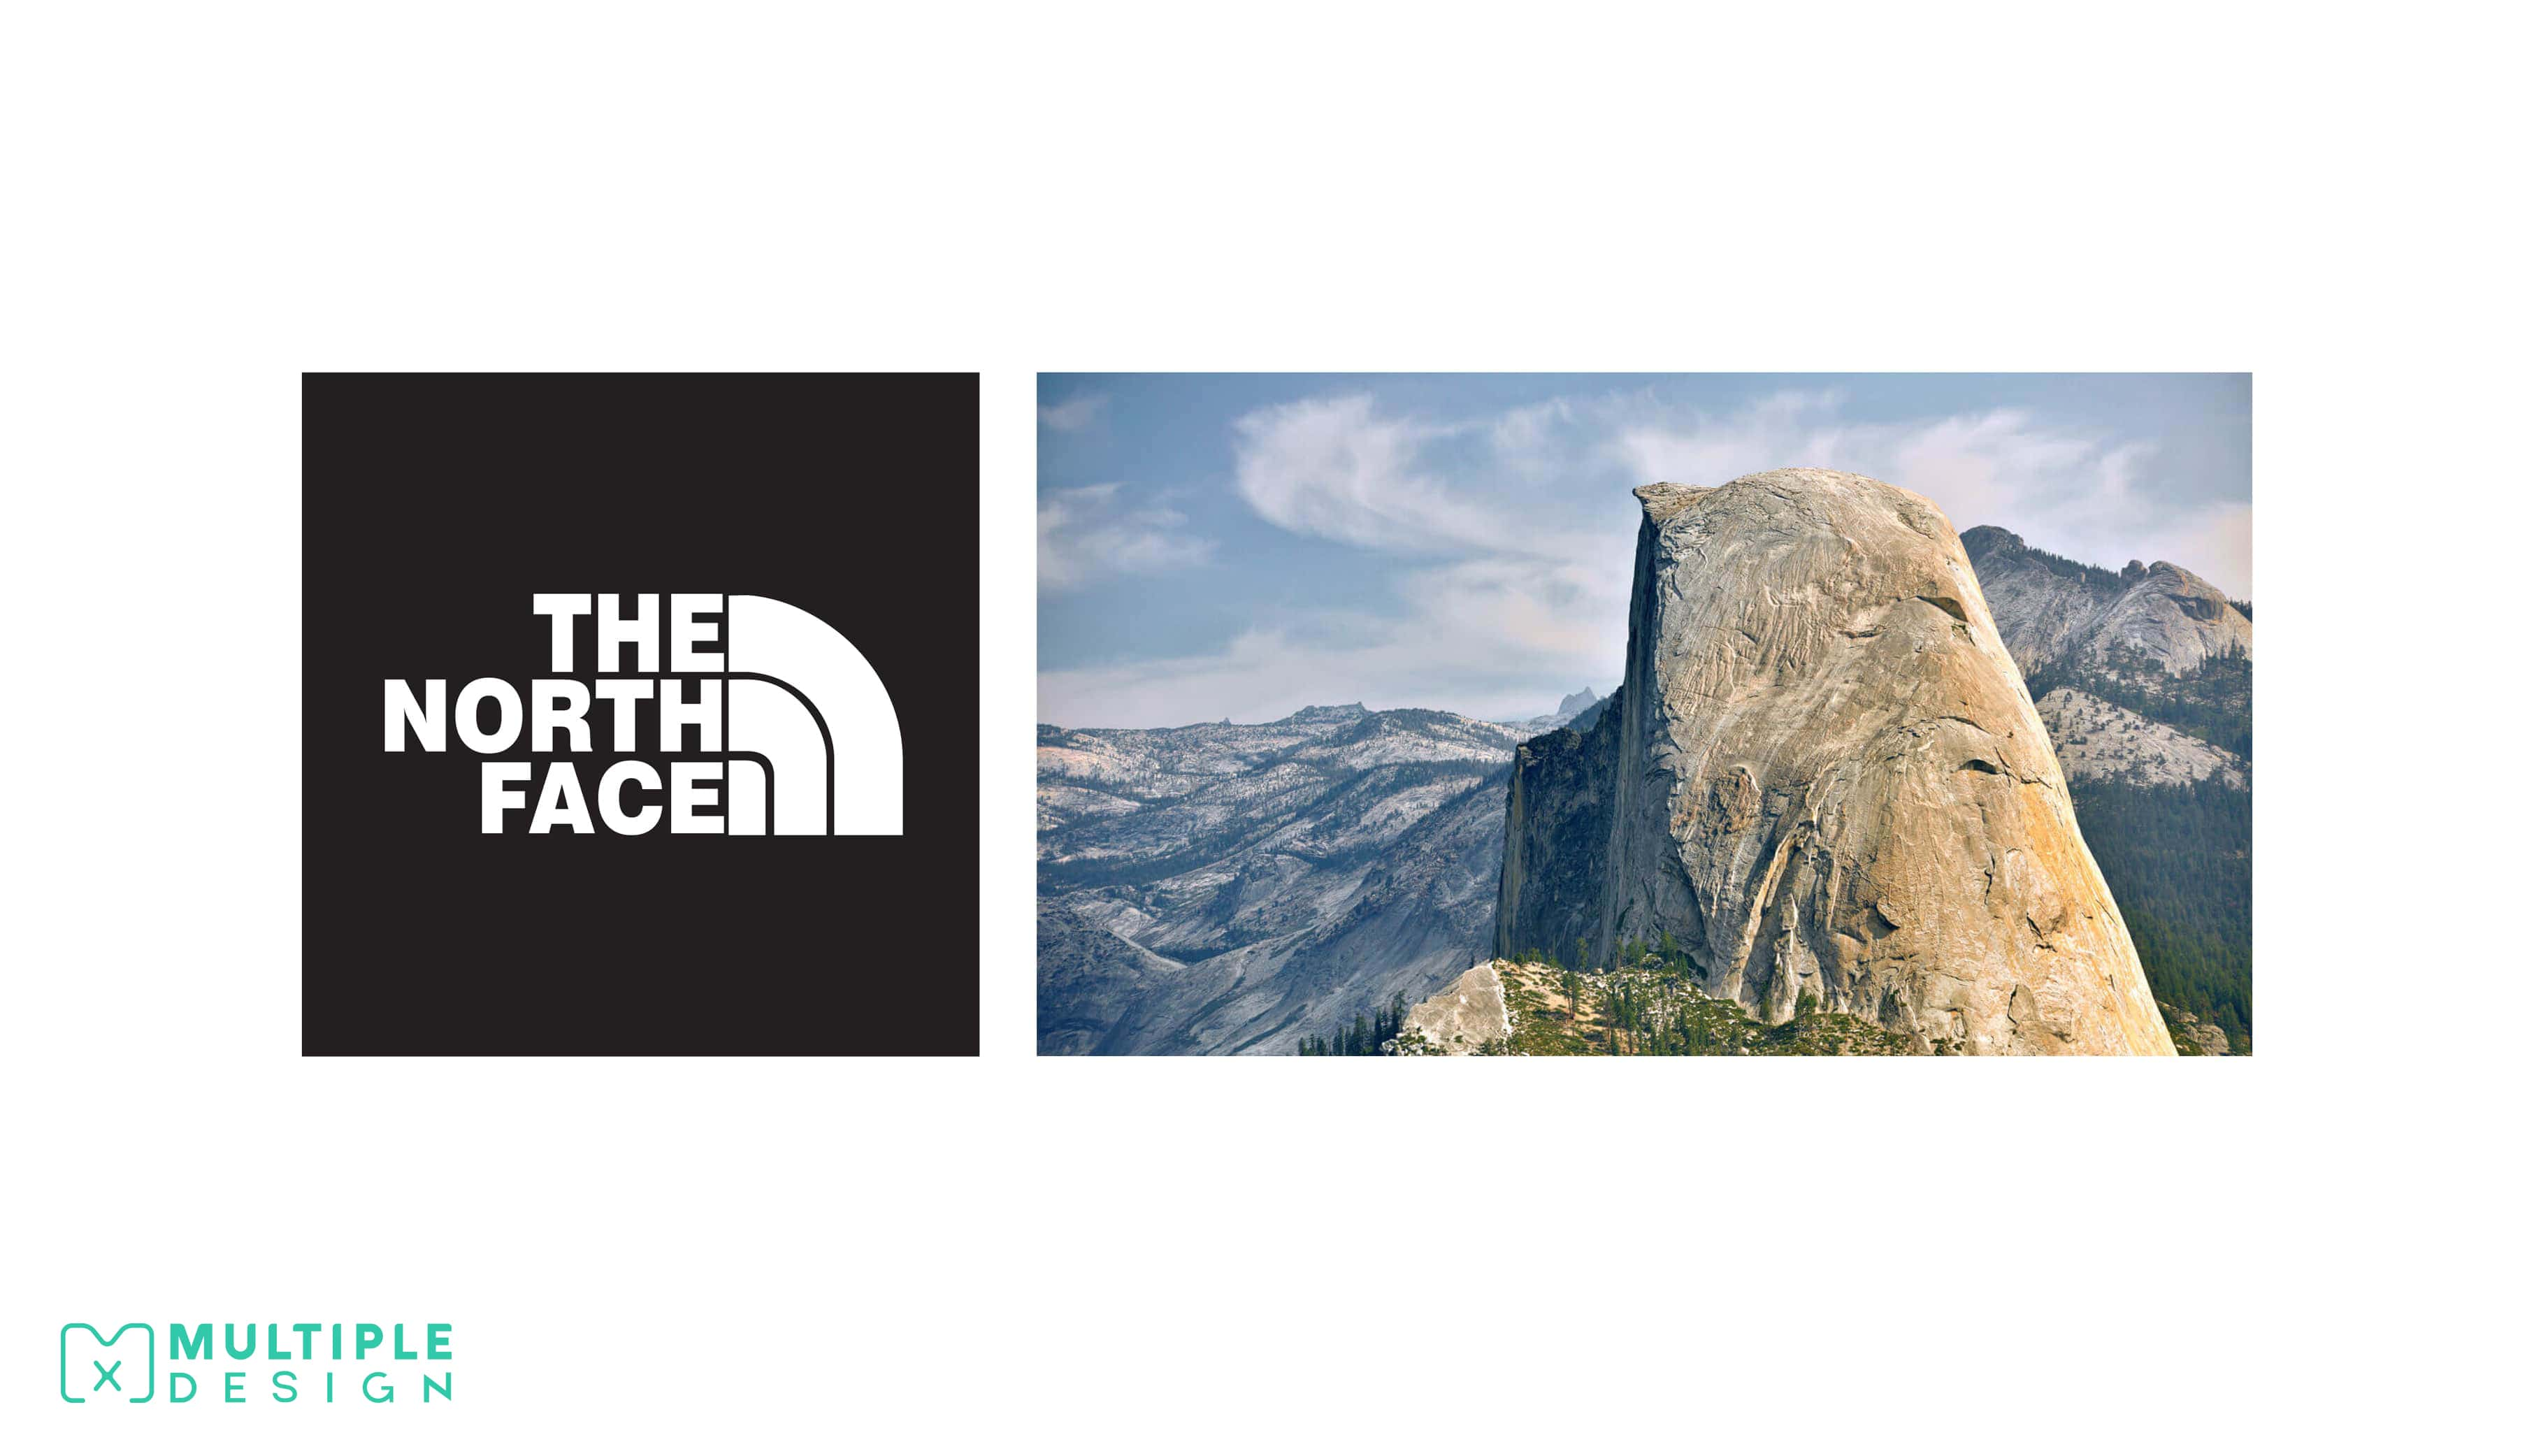 The North Face logo, Half Dome Rock Formation, Yosemite Nations Park